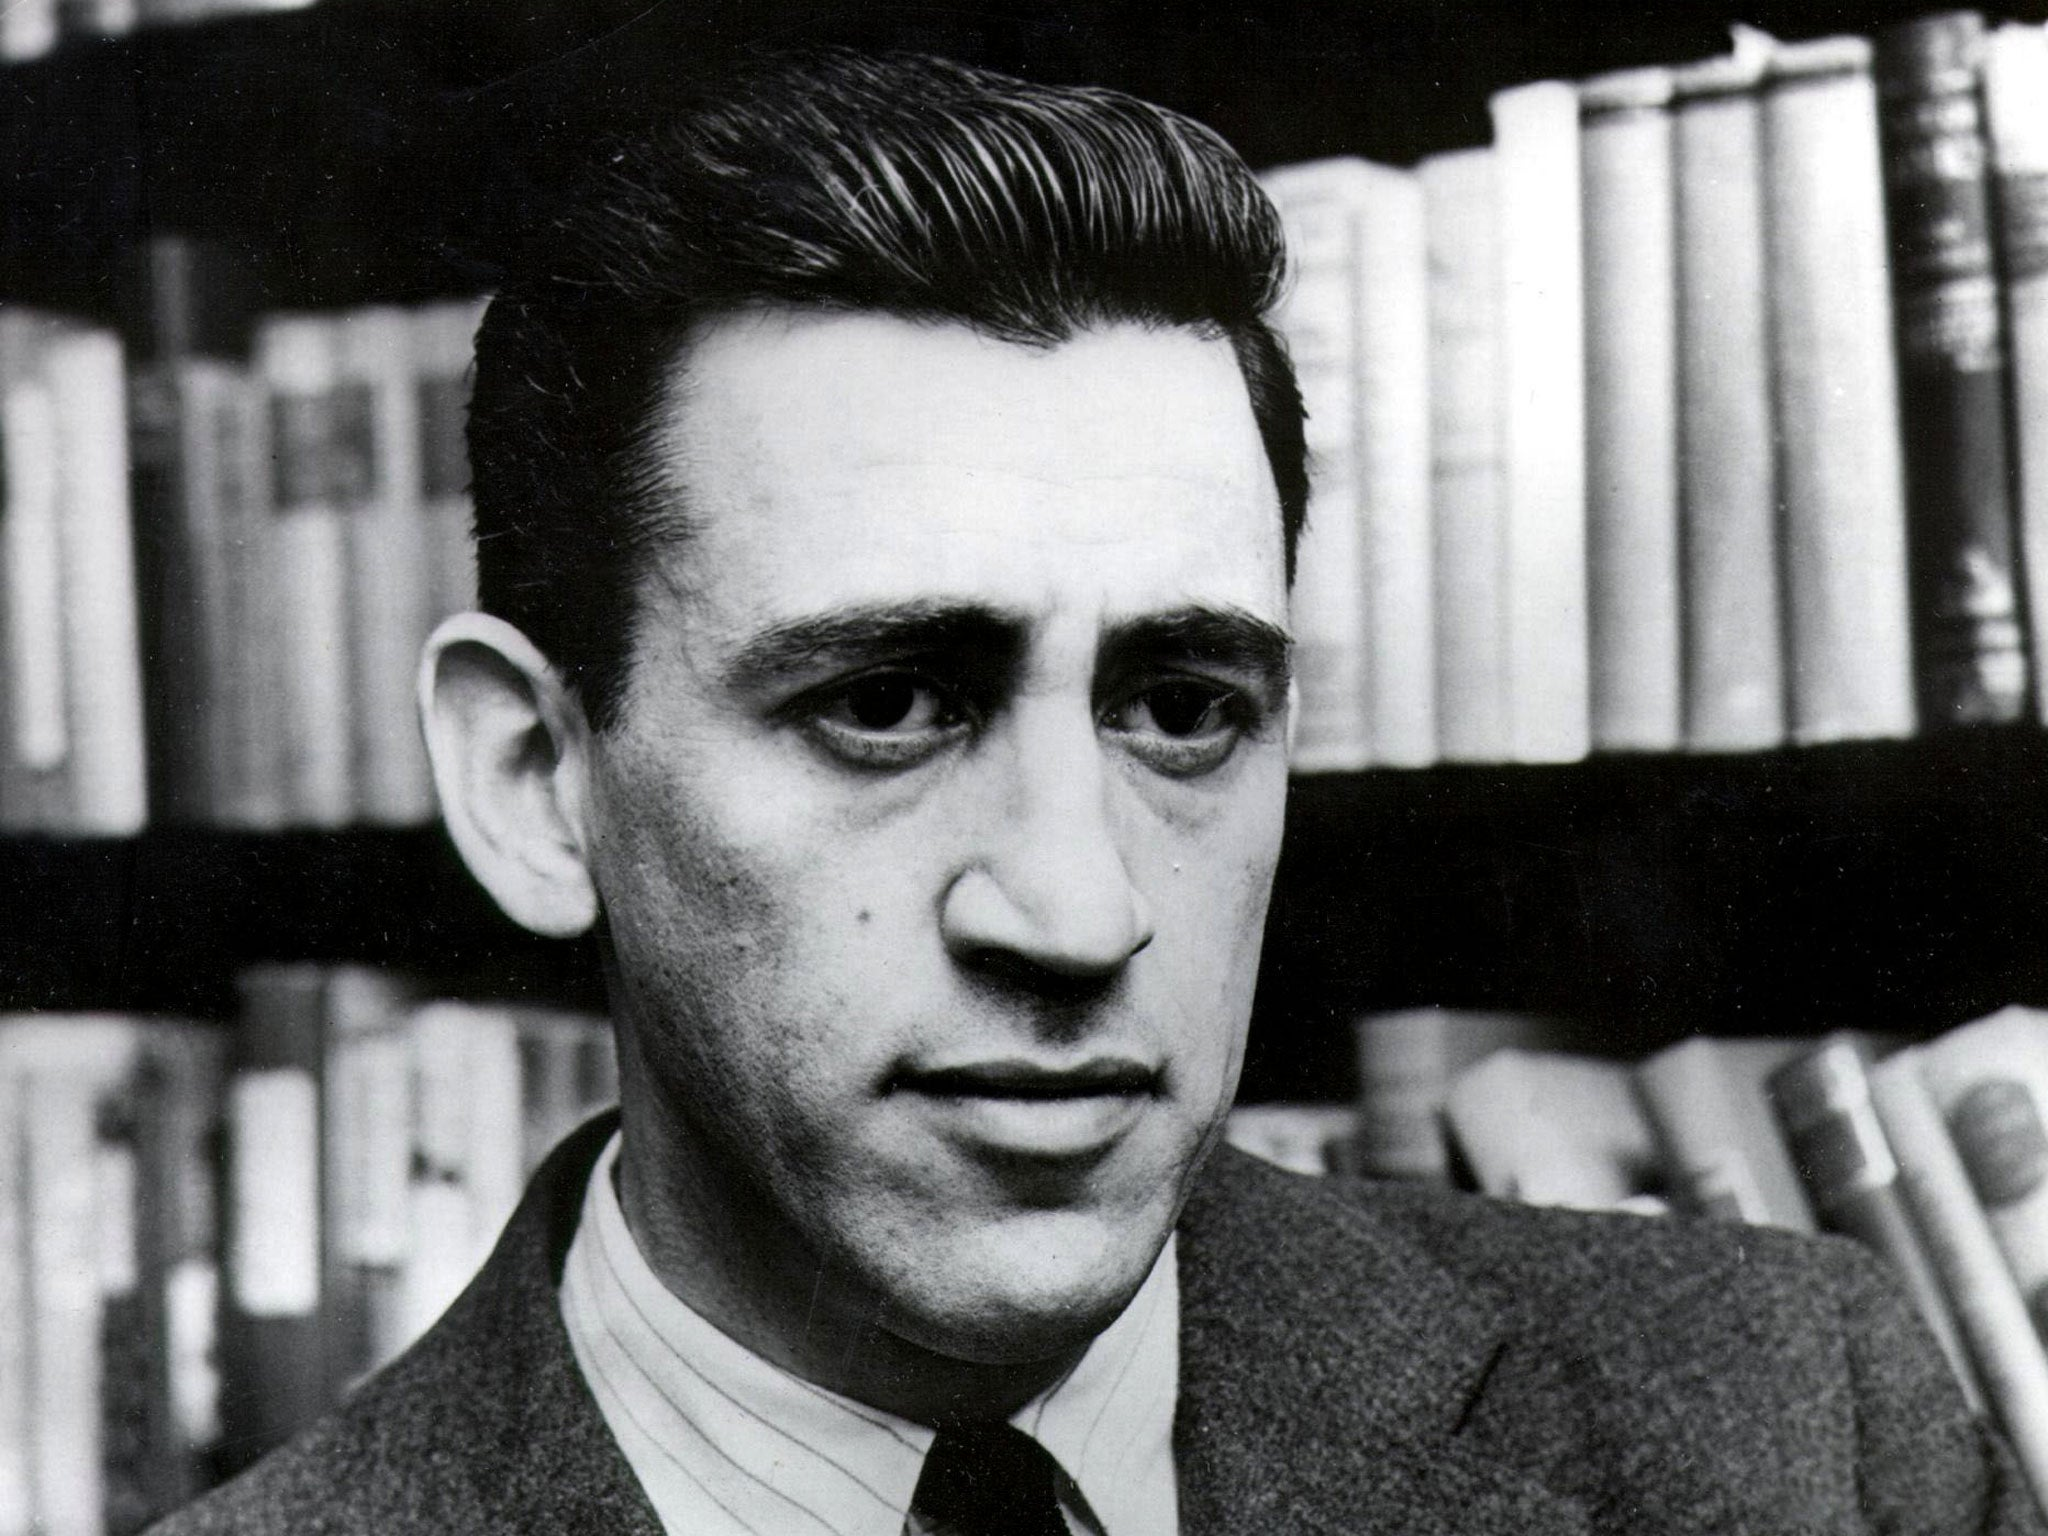 a biography of jd salinger a controversial writer Jd salinger is a famous american author, known for 'the catcher in the rye', a novel that is popular even today read on for detailed information about his childhood, profile, career and timeline.